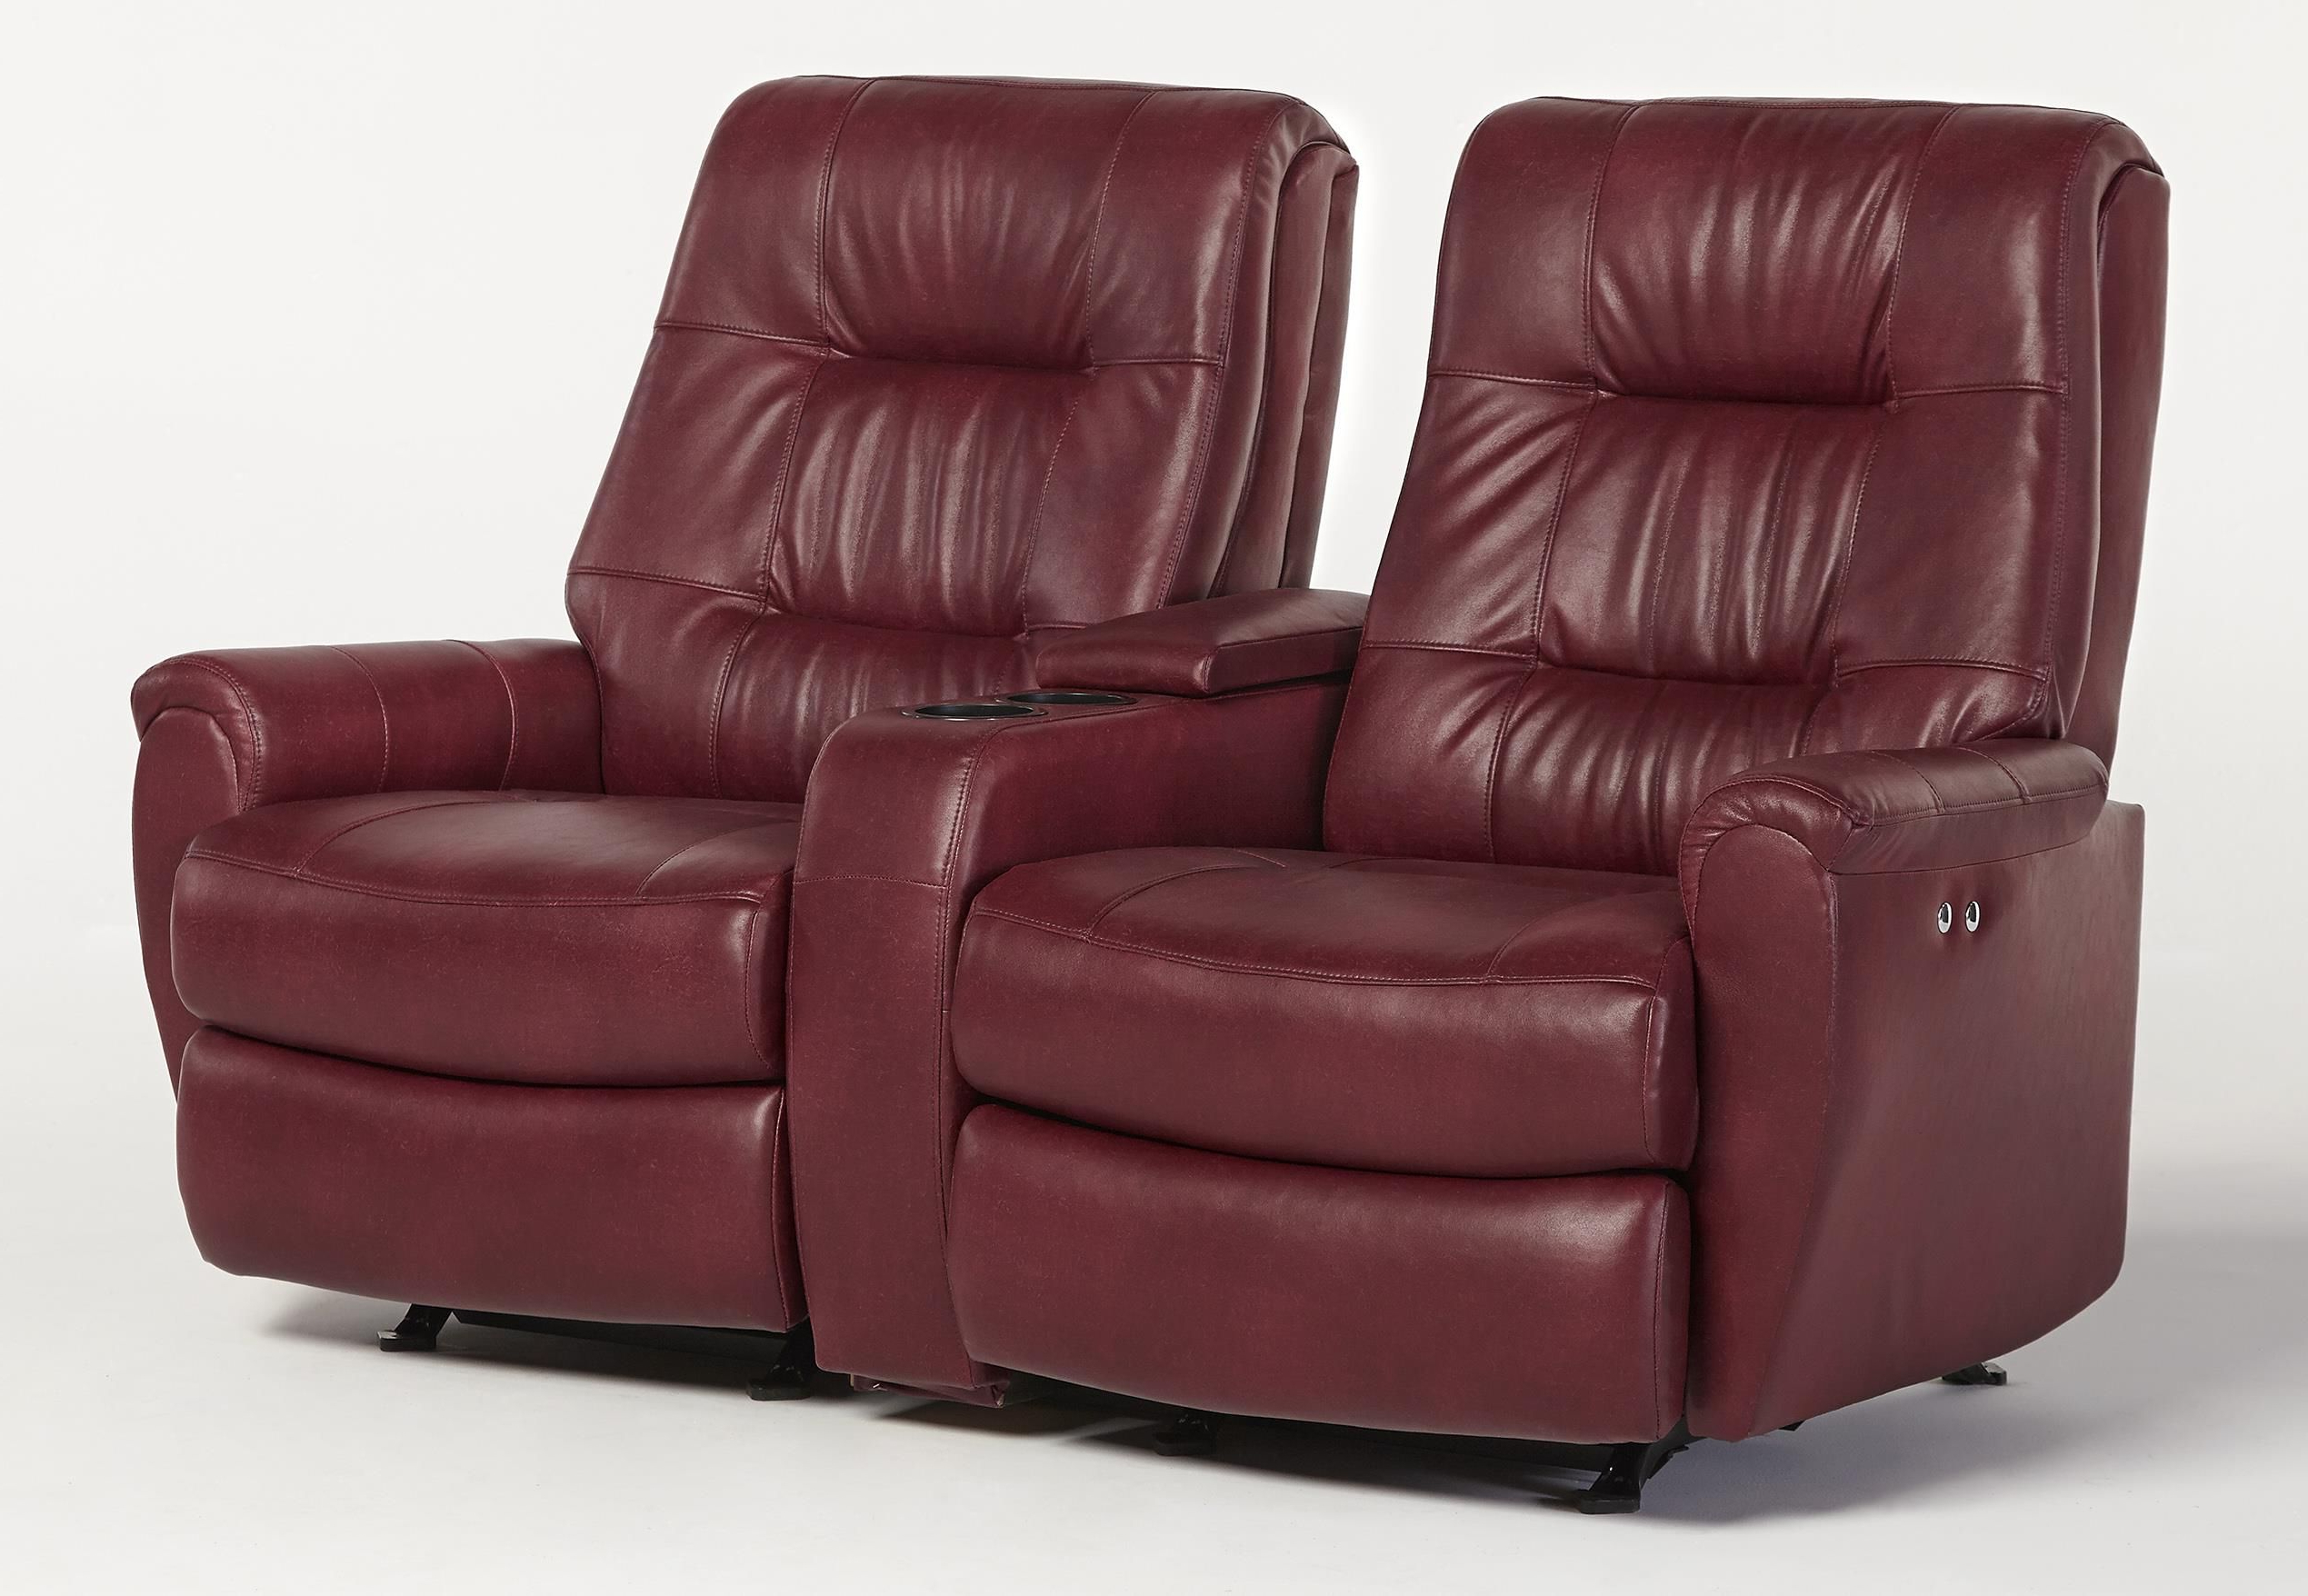 Small Scale Reclining Space With Regard To Marcus Oyster 6 Piece Sectionals With Power Headrest And Usb (View 12 of 20)